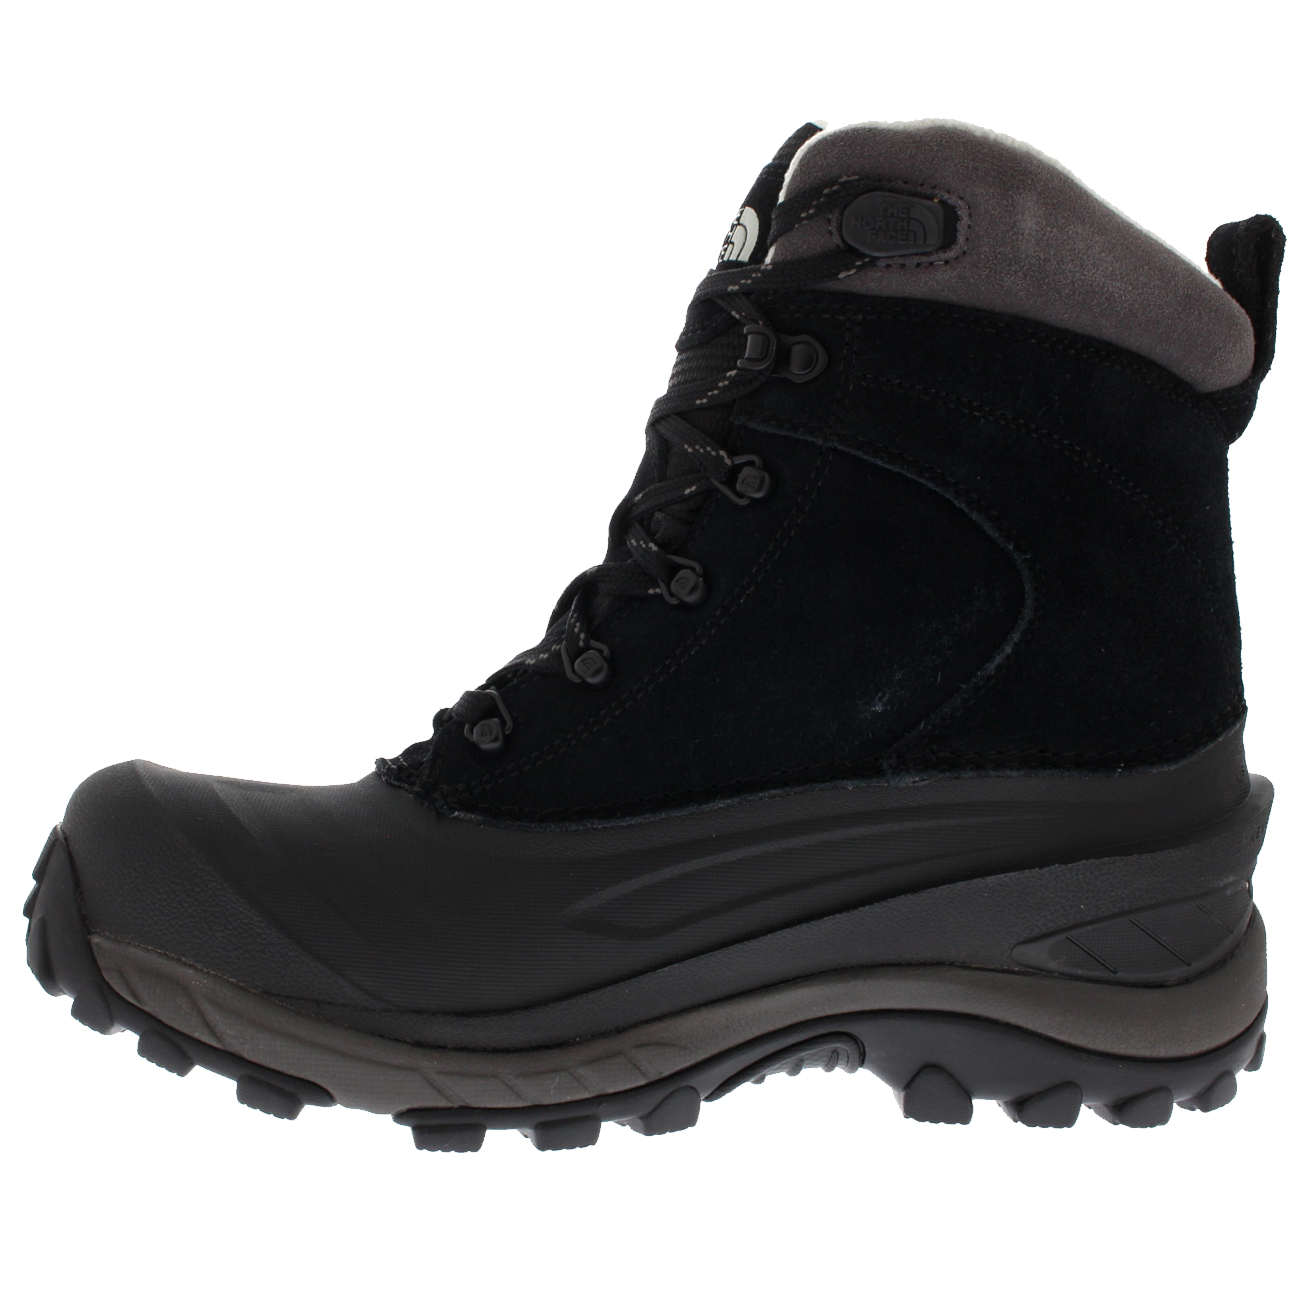 The North Face Chilkat III Men/'s Waterproof Insulated Winter Boots